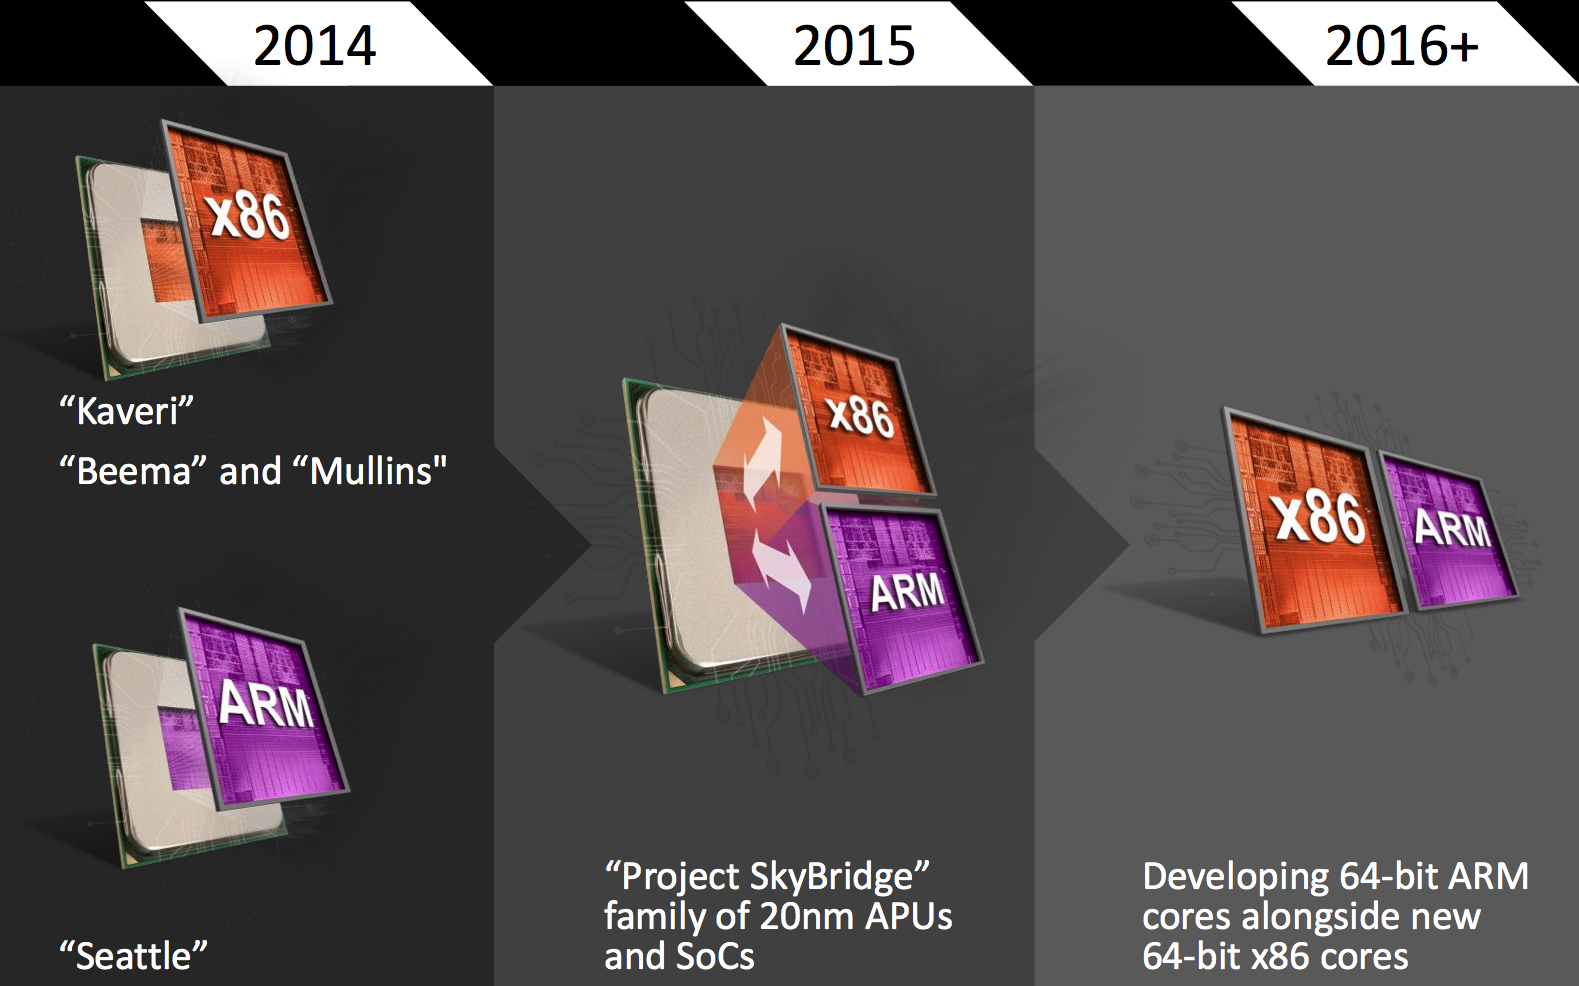 AMD Might Be Developing Next Generation APU With x86 Cheetah